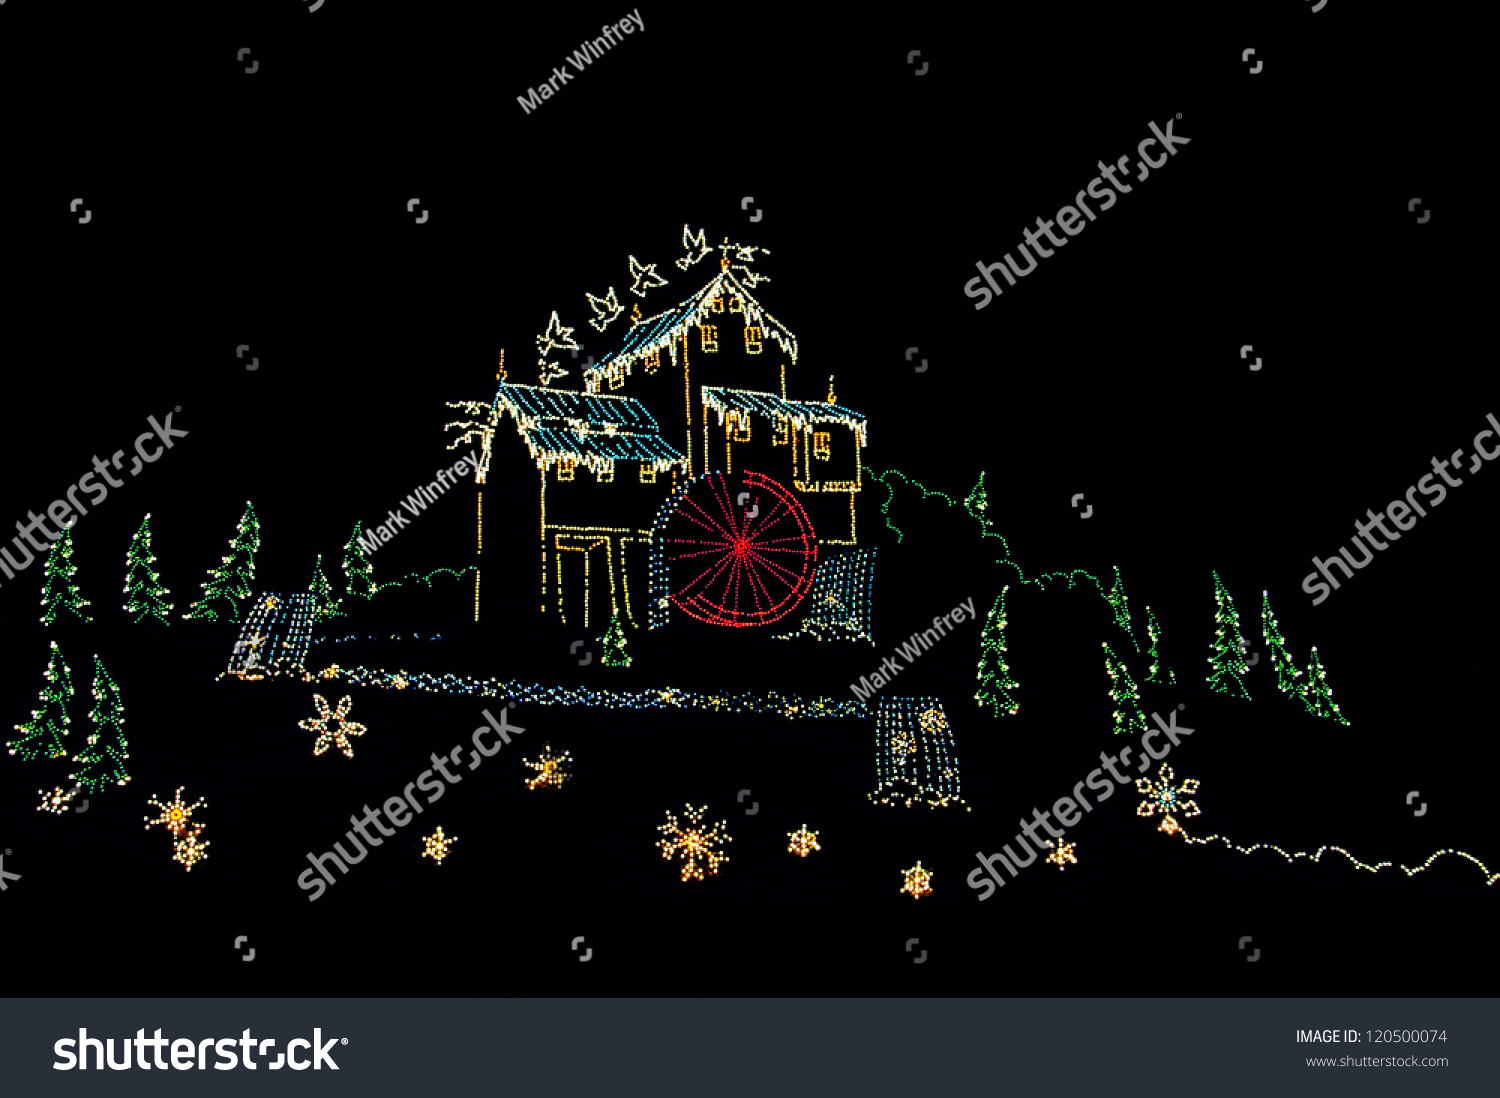 stock-photo-old-mill-decorated-in-lights